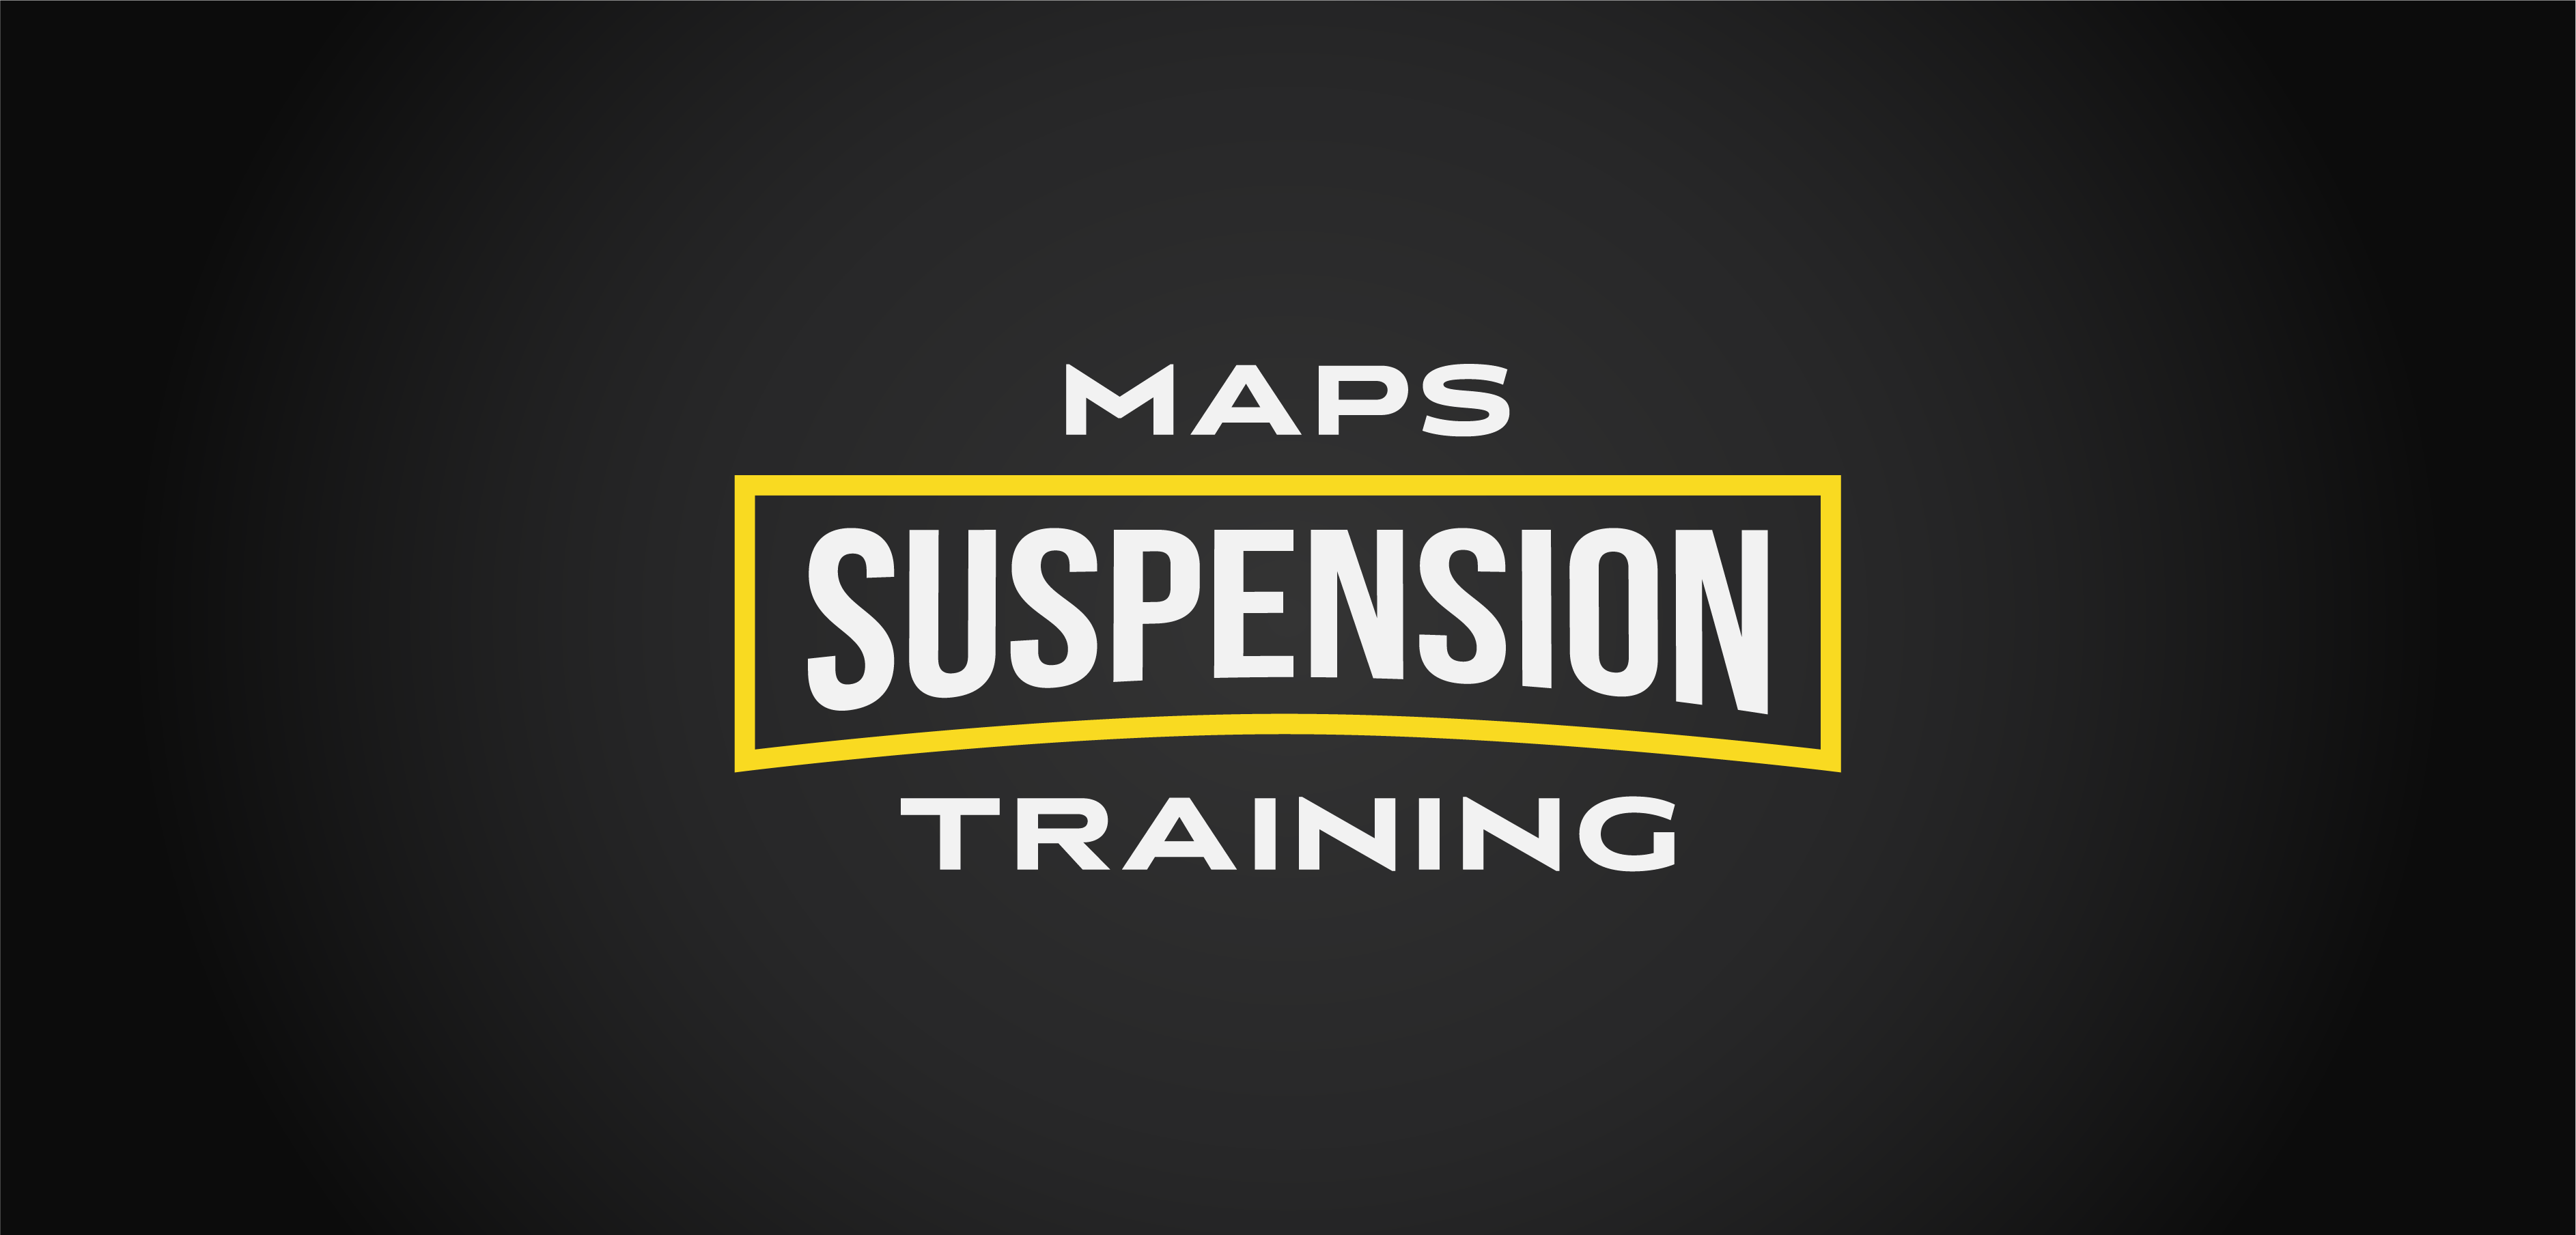 MAPS Suspension Training